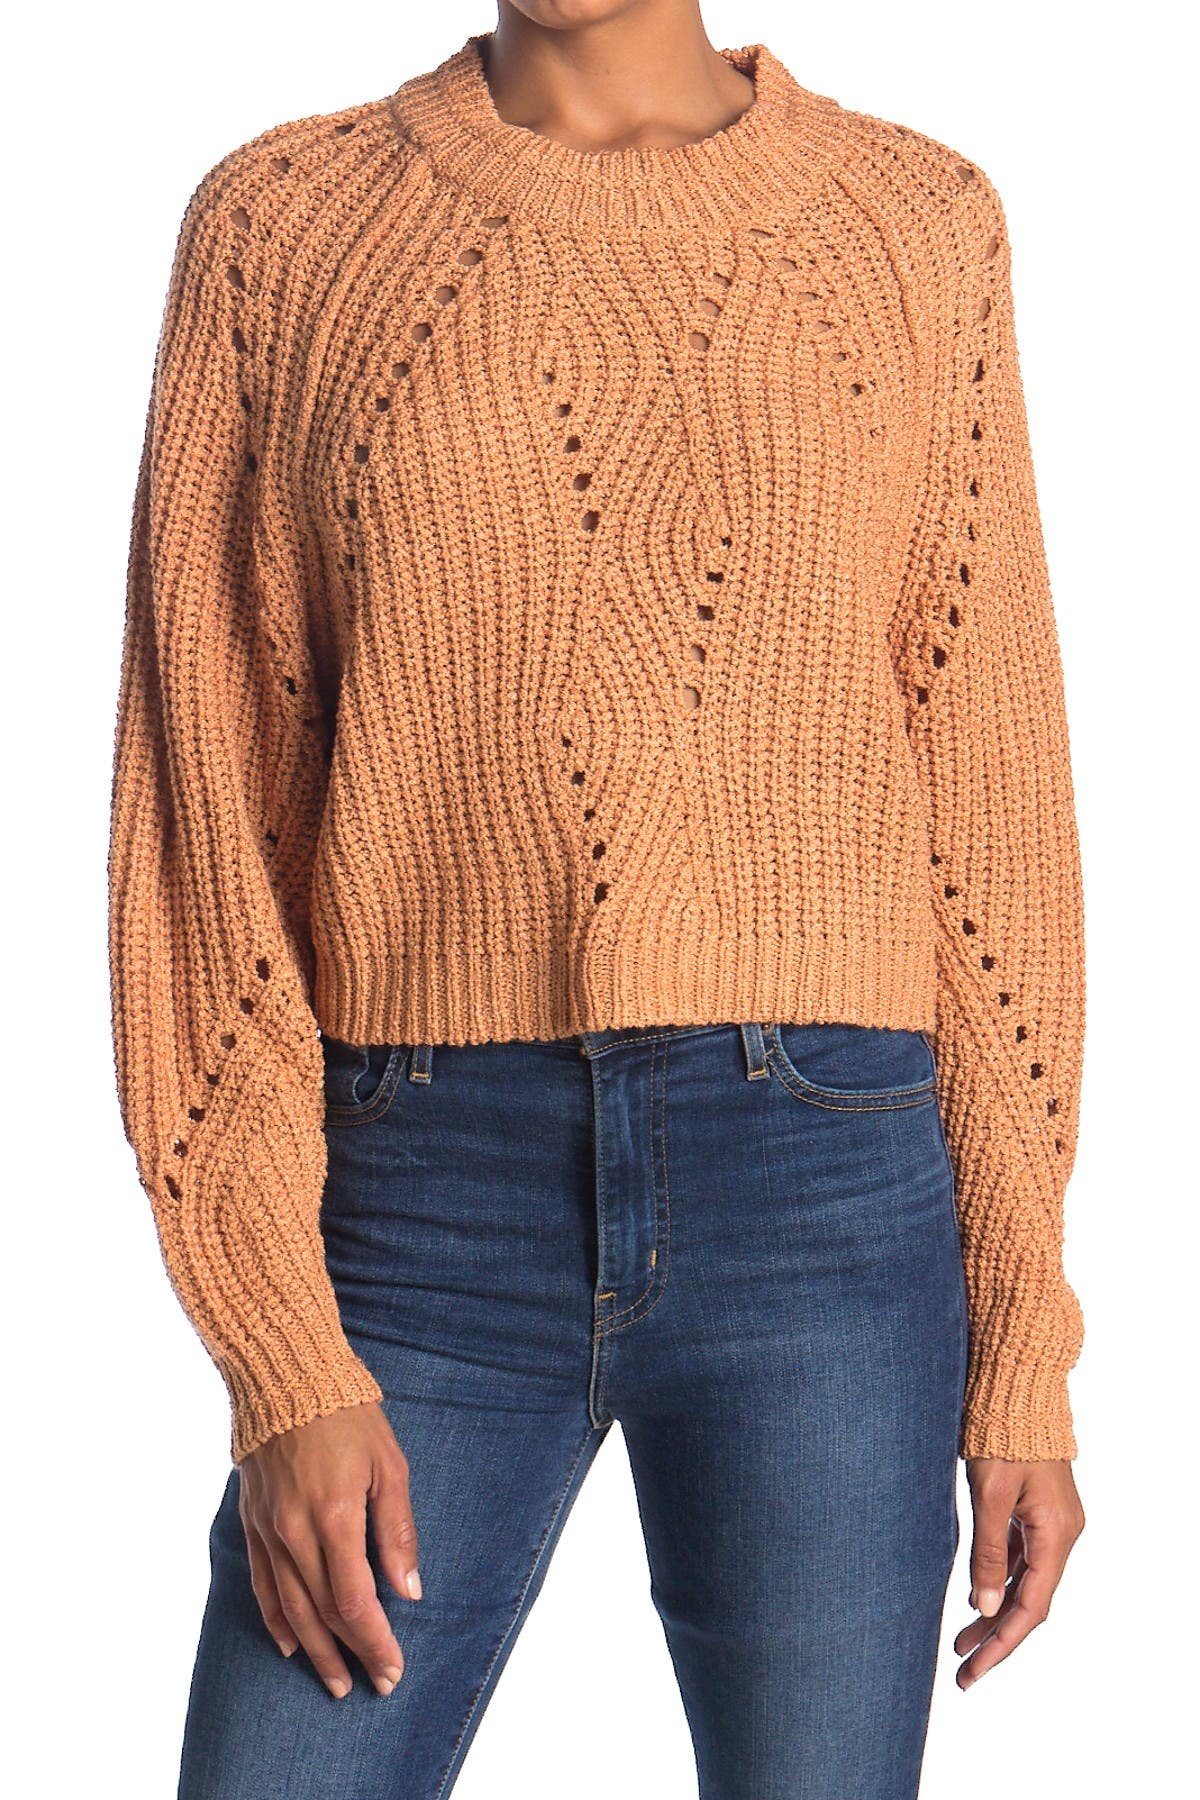 Image of Lush Pointelle Knit Sweater